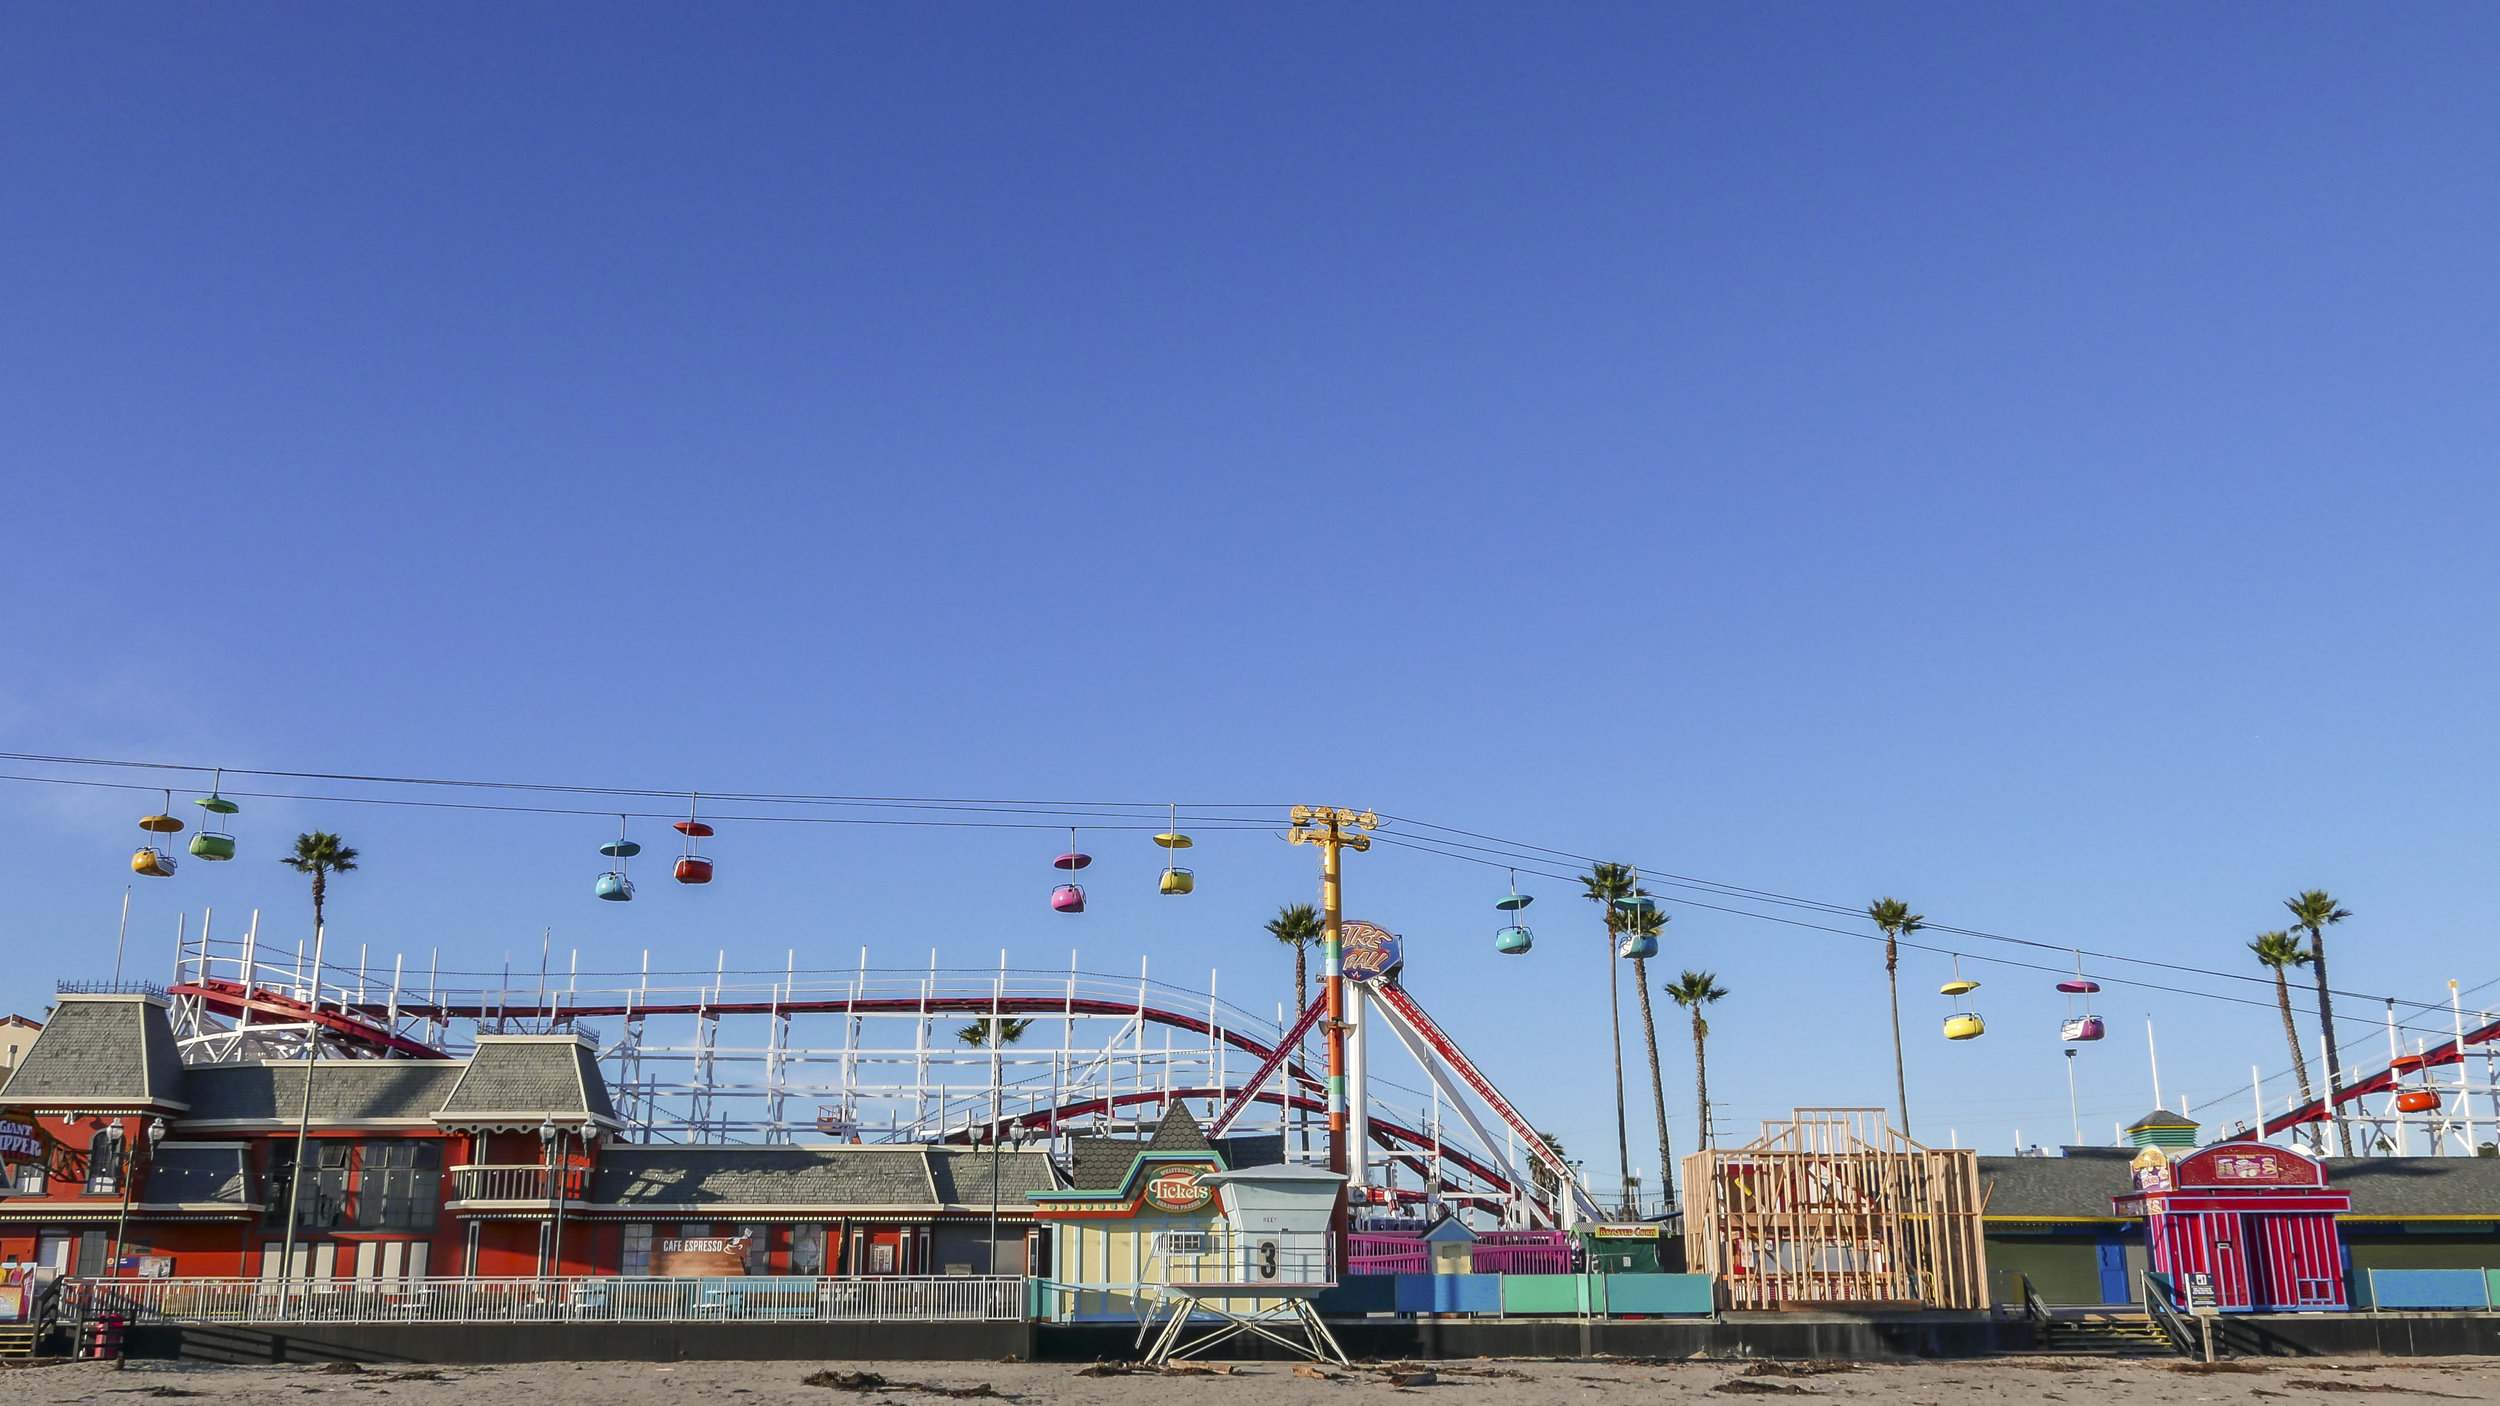 JWP_SantaCruz_Boardwalk-1030326-2.jpg